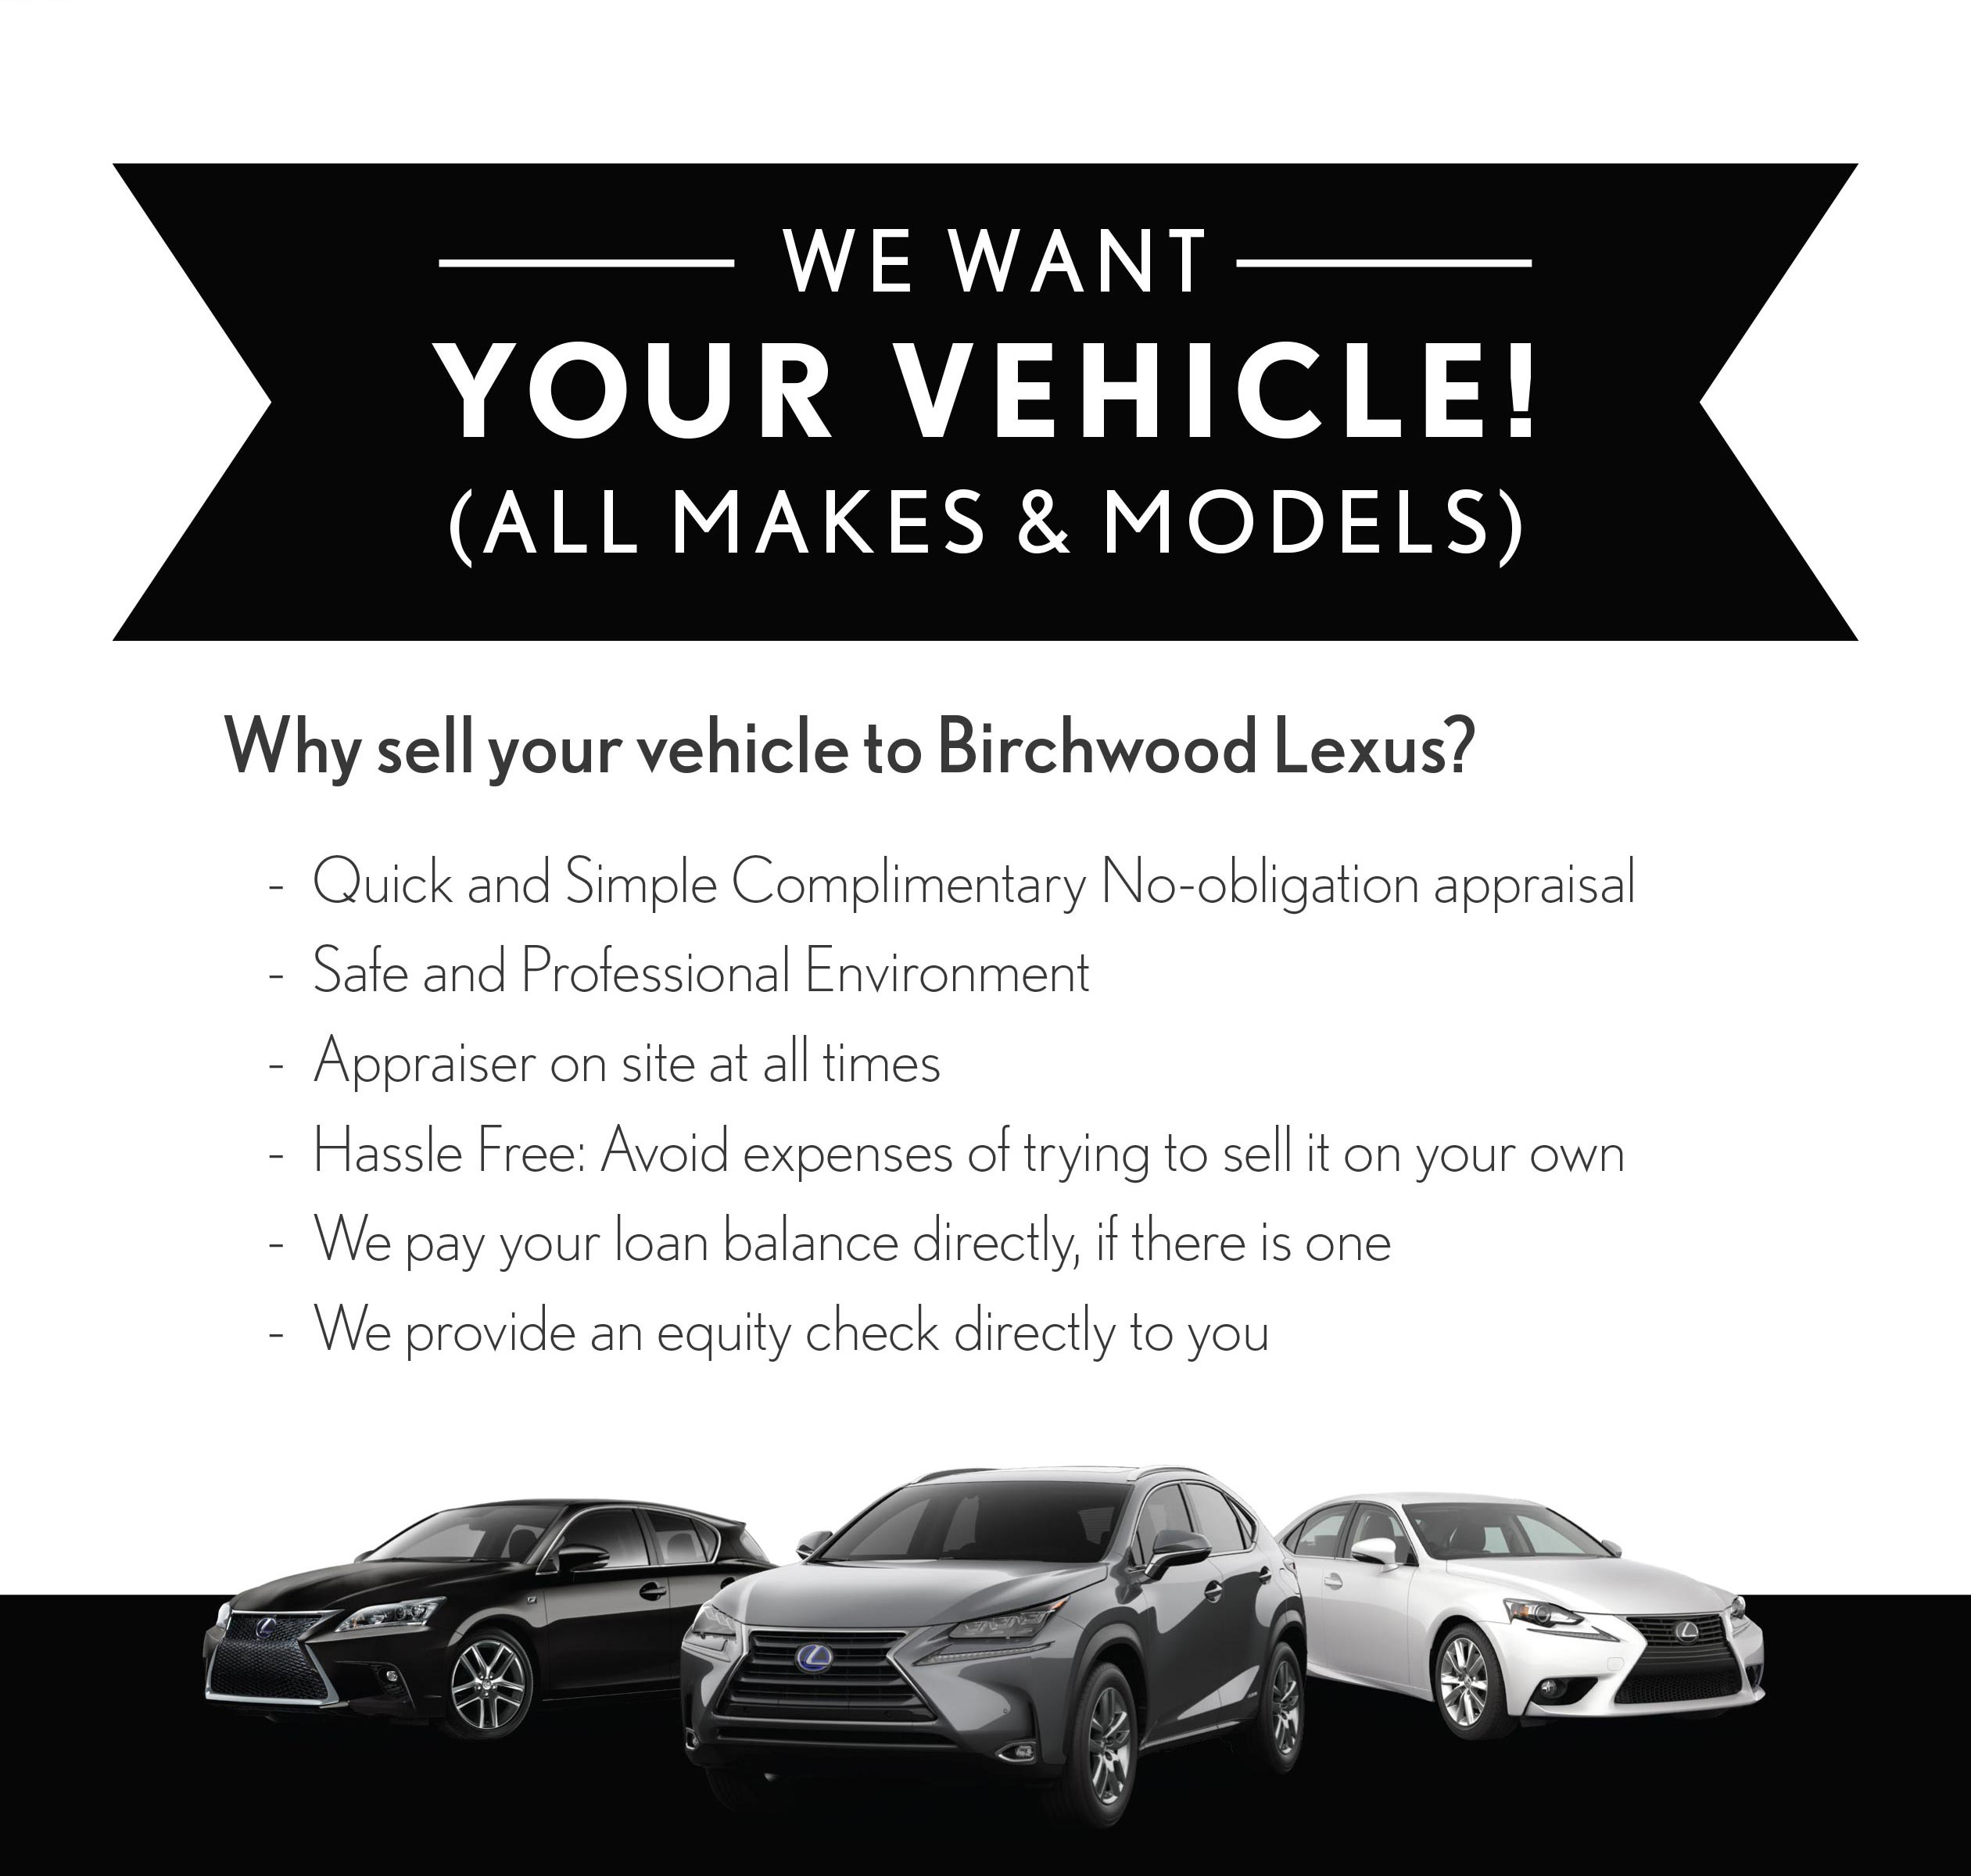 Birchwoo Lexus we want your vehicle